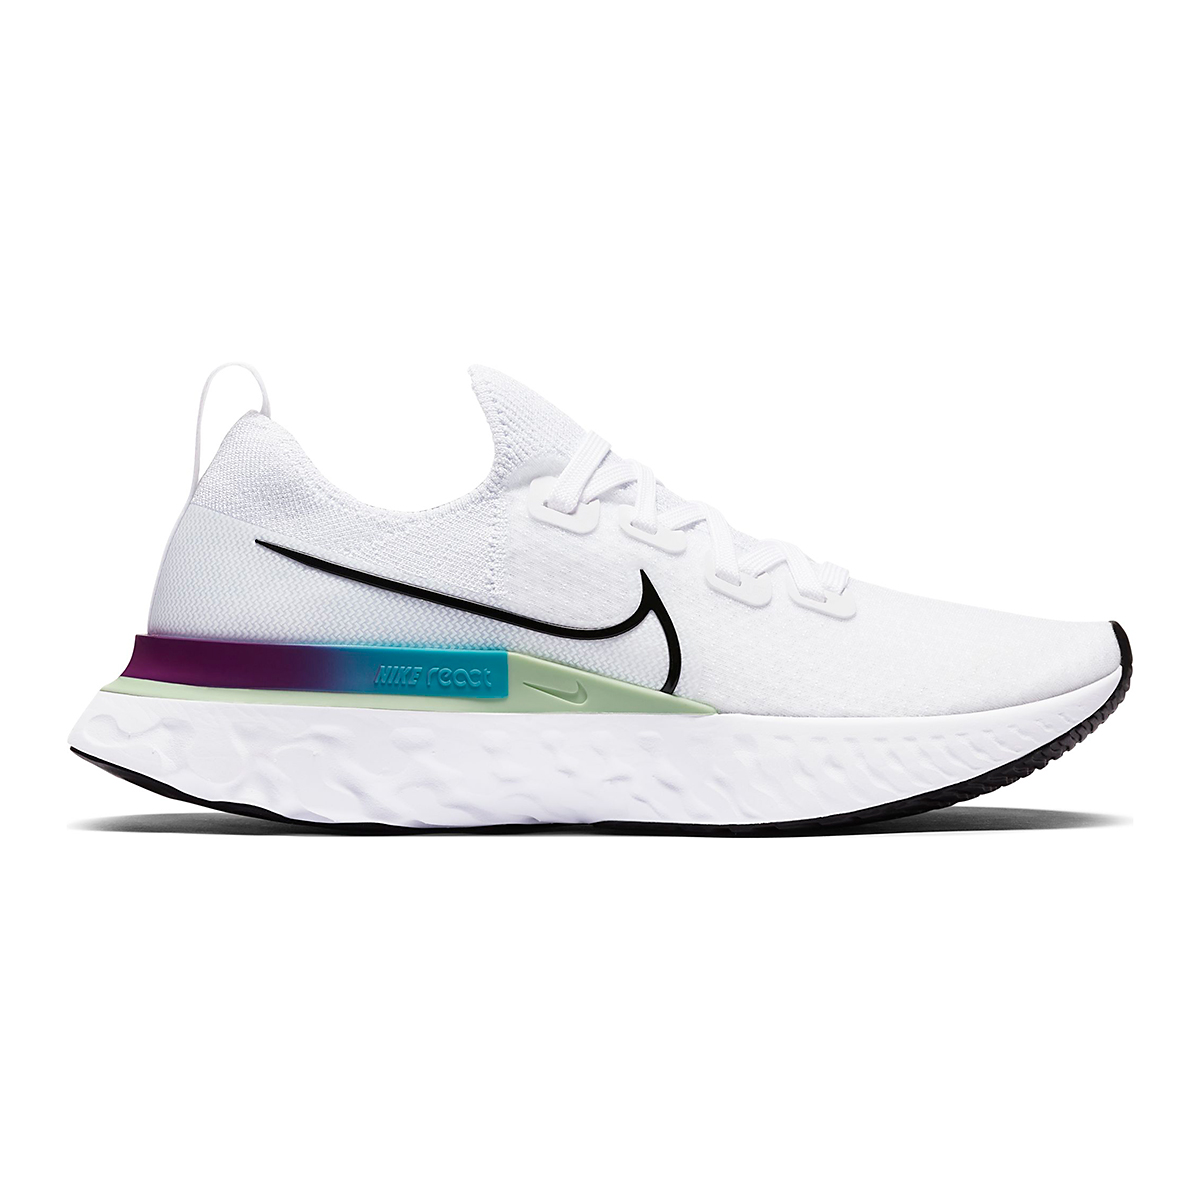 Women's Nike React Infinity Run Flyknit Running Shoes - Color: White/Vapor Green/Oracle Aqua/Black - Size: 5 - Width: Regular, White/Vapor Green/Oracle Aqua/Black, large, image 1